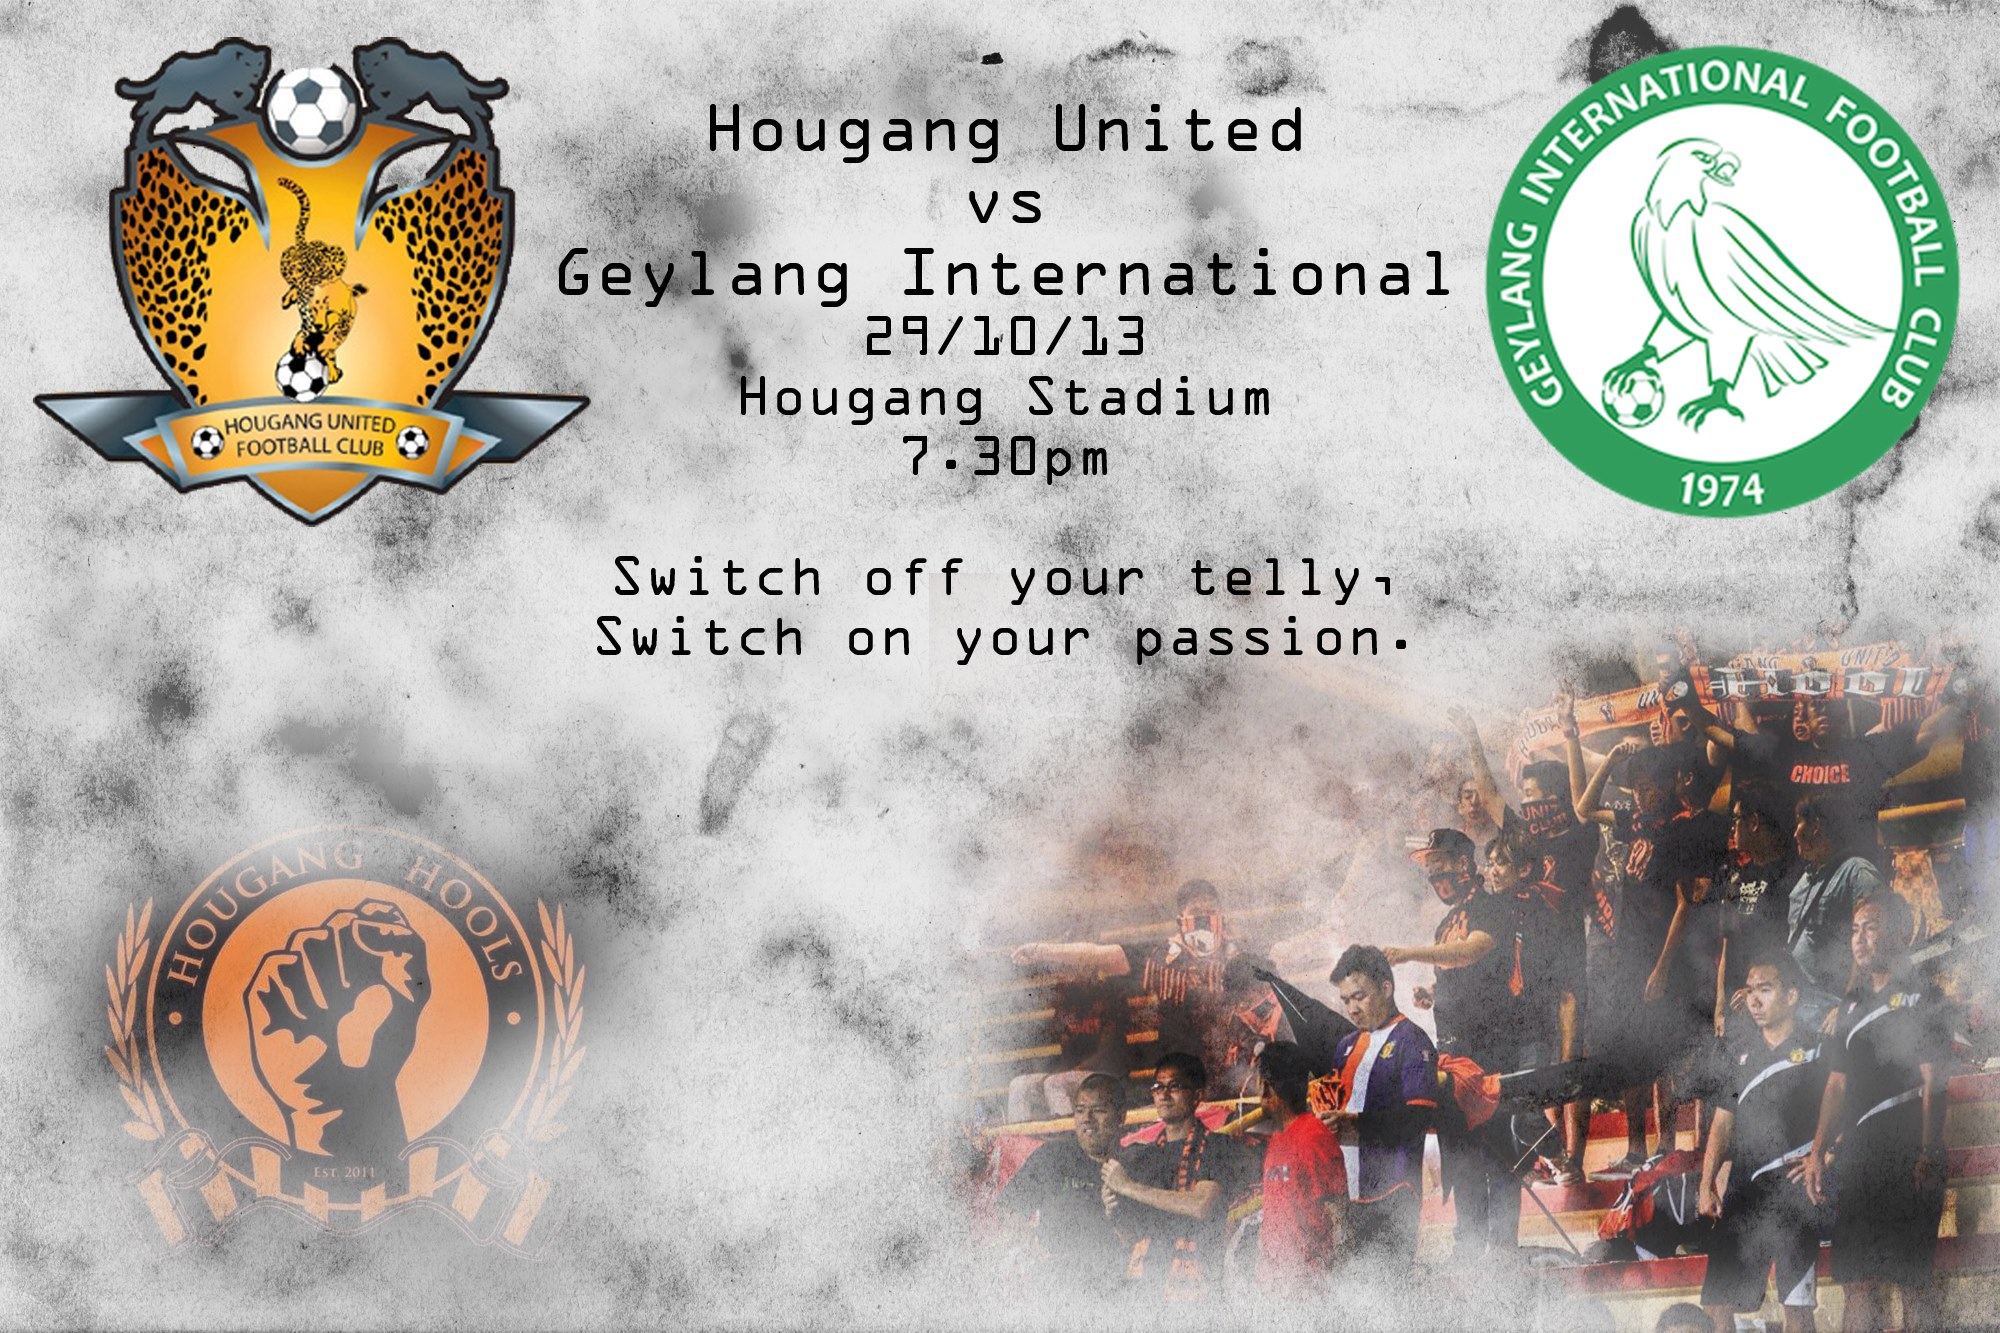 Match Preview: Hougang United vs Geylang International